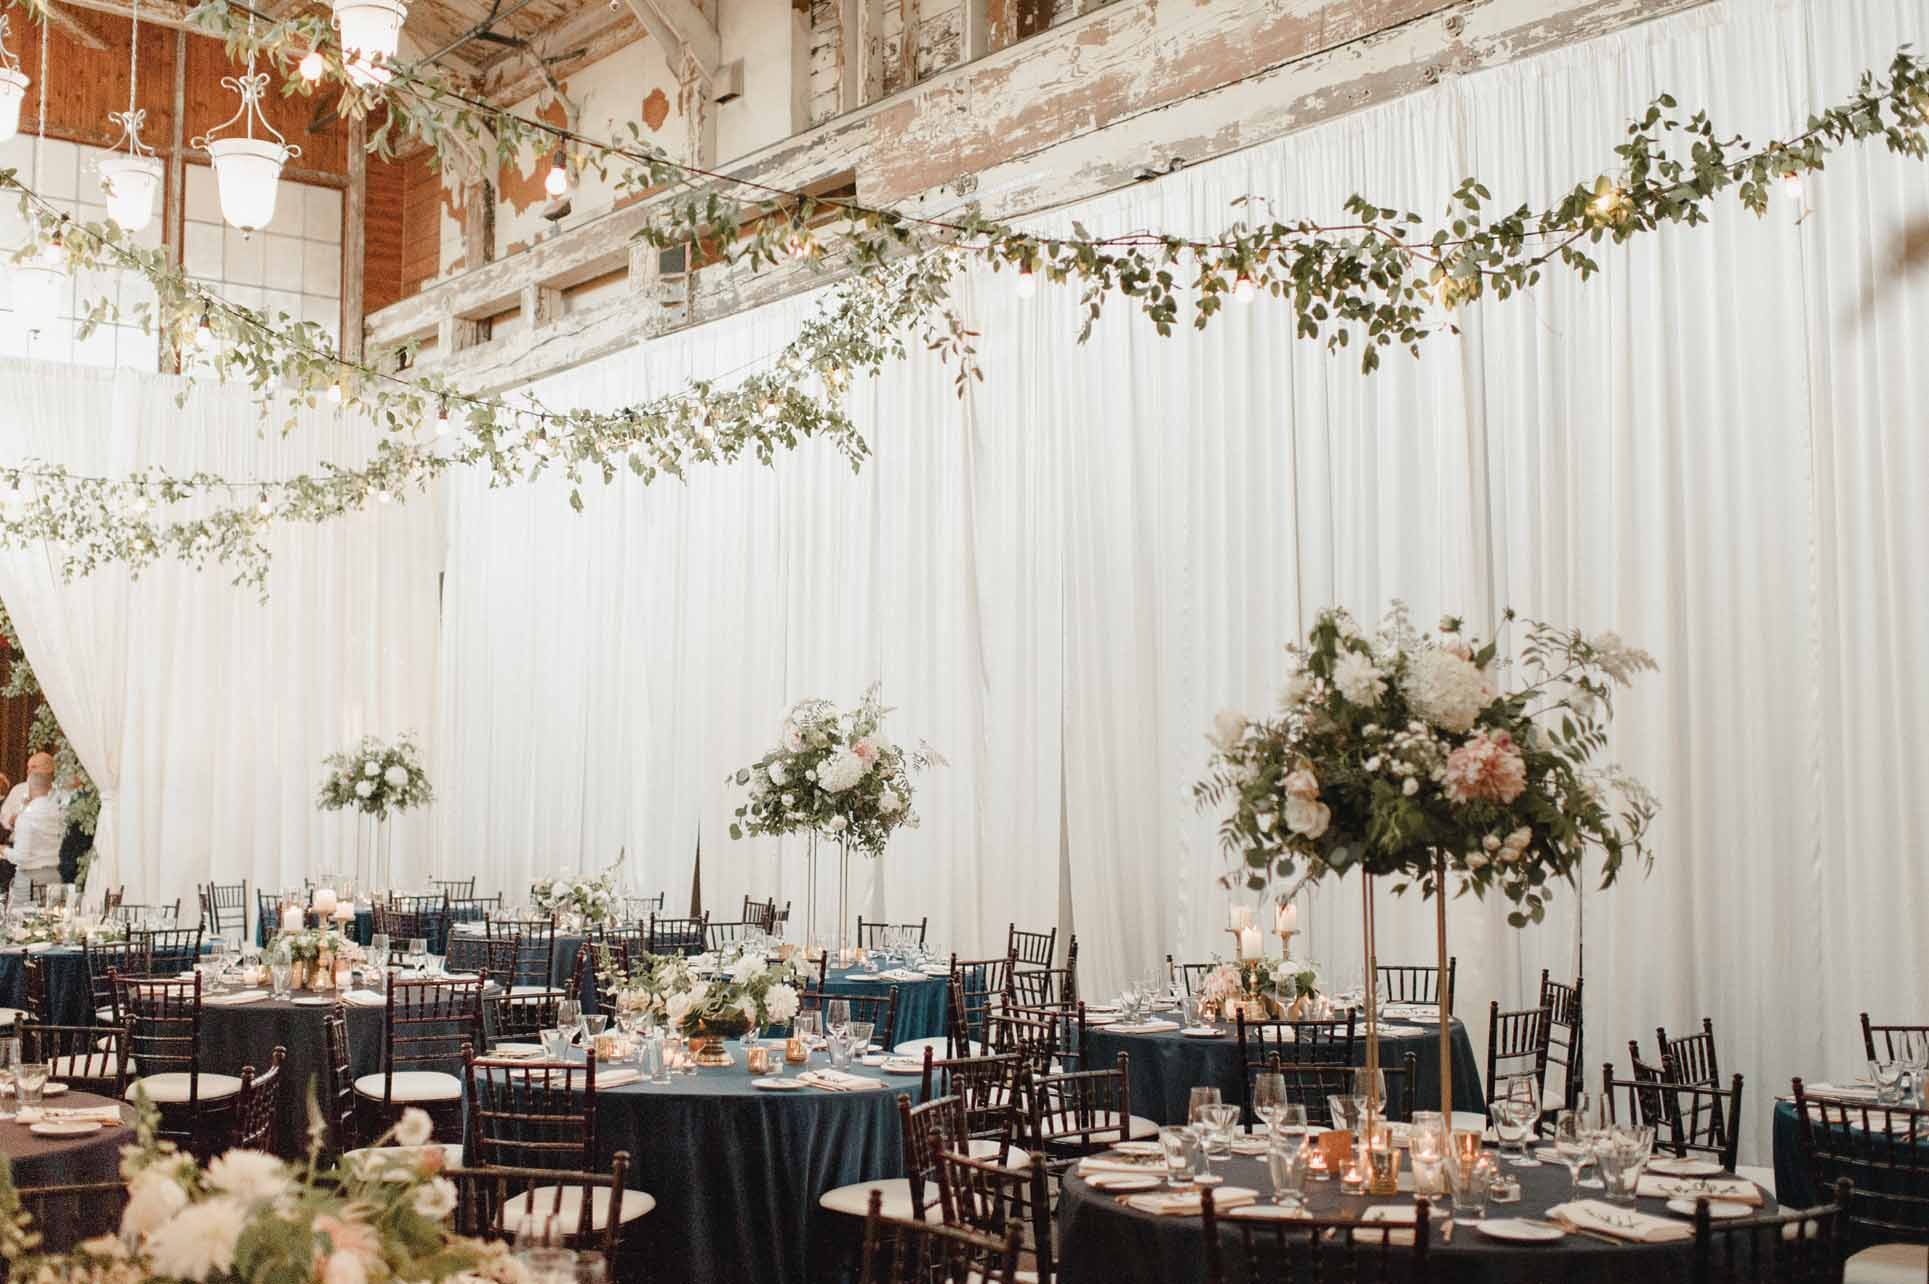 Tall centerpieces at Sodo Park wedding, greenery garlands in ceiling, blue linens, cream draping, brown Chivari chairs - by Designer Flora Nova Design - Seattle